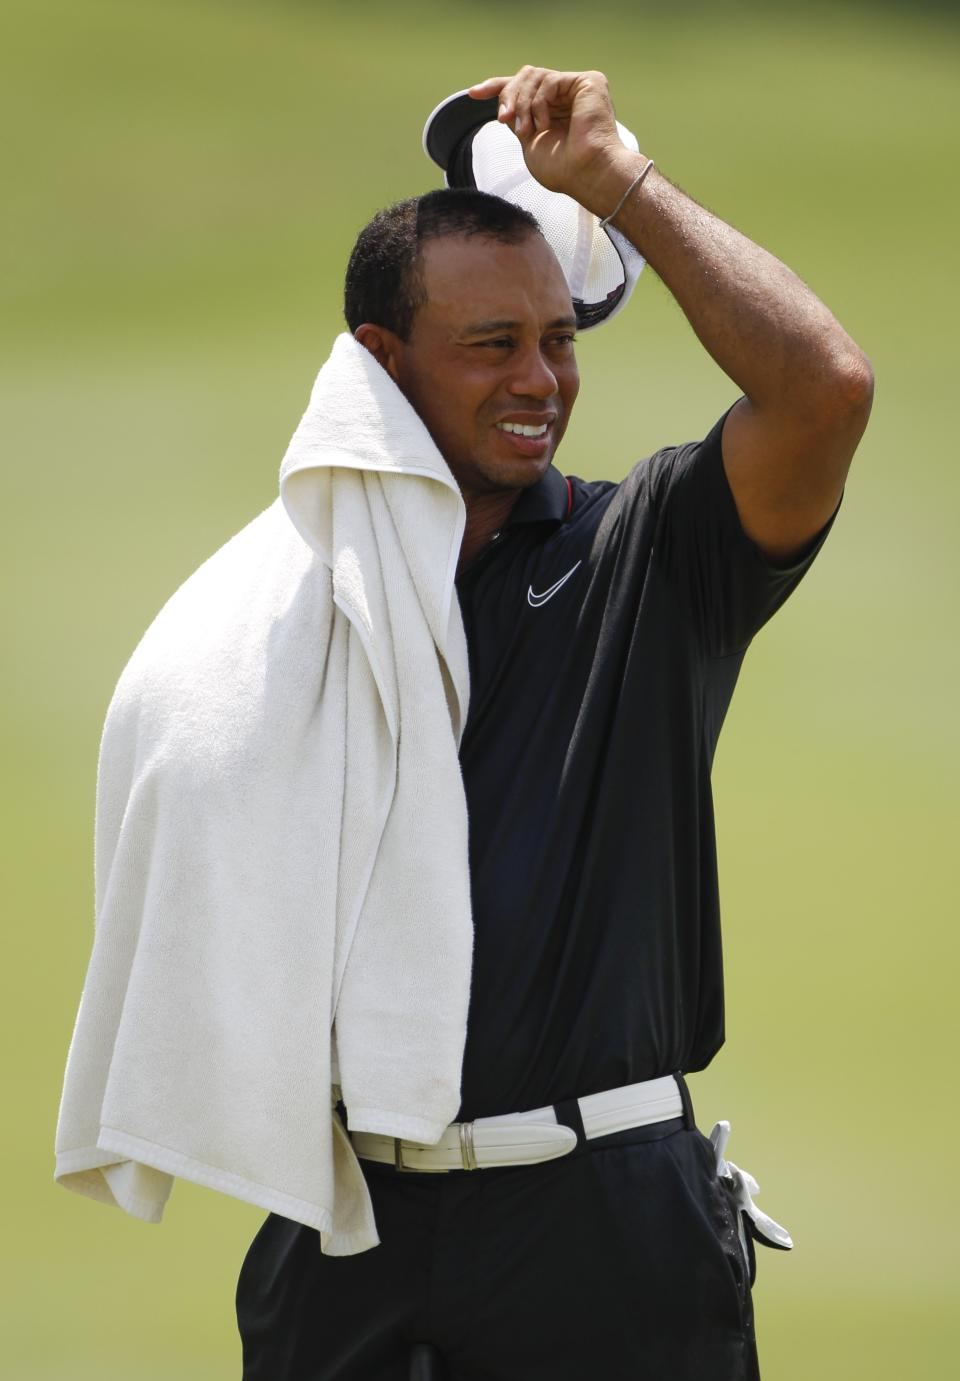 Tiger Woods of the United States wipes his face down with a towel on the 11th hole during the round two of CIMB Classic golf tournament at the Mines Resort and Golf Club in Kuala Lumpur, Malaysia, Friday, Oct. 26, 2012.  (AP Photo/Vincent Thian)